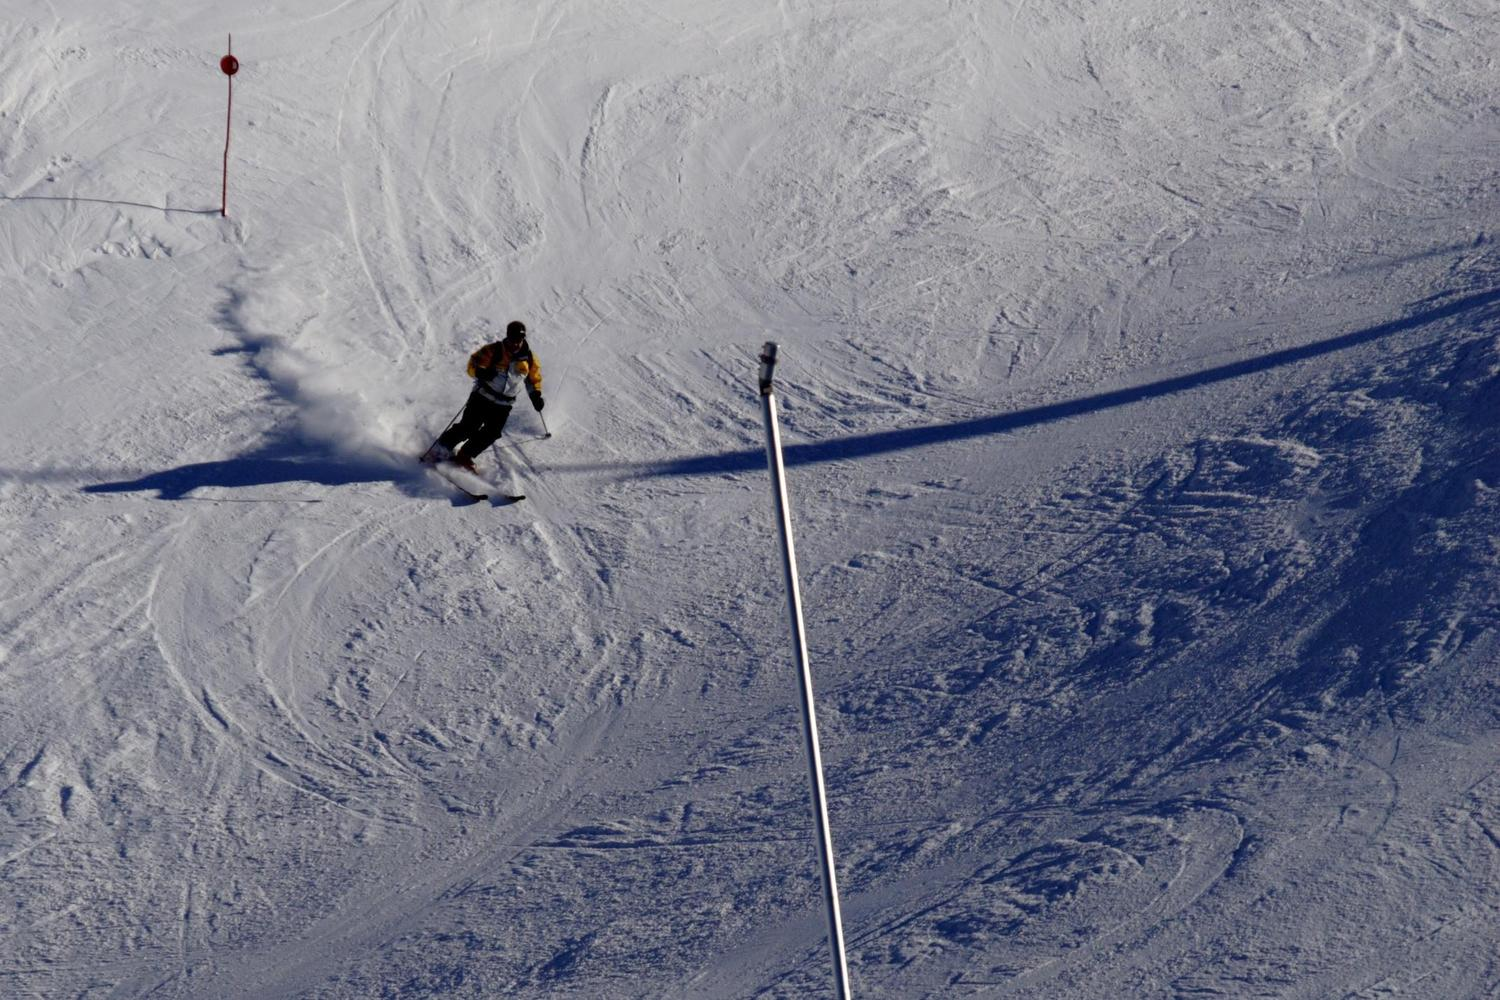 Cerler pistes are well covered by snow blowers